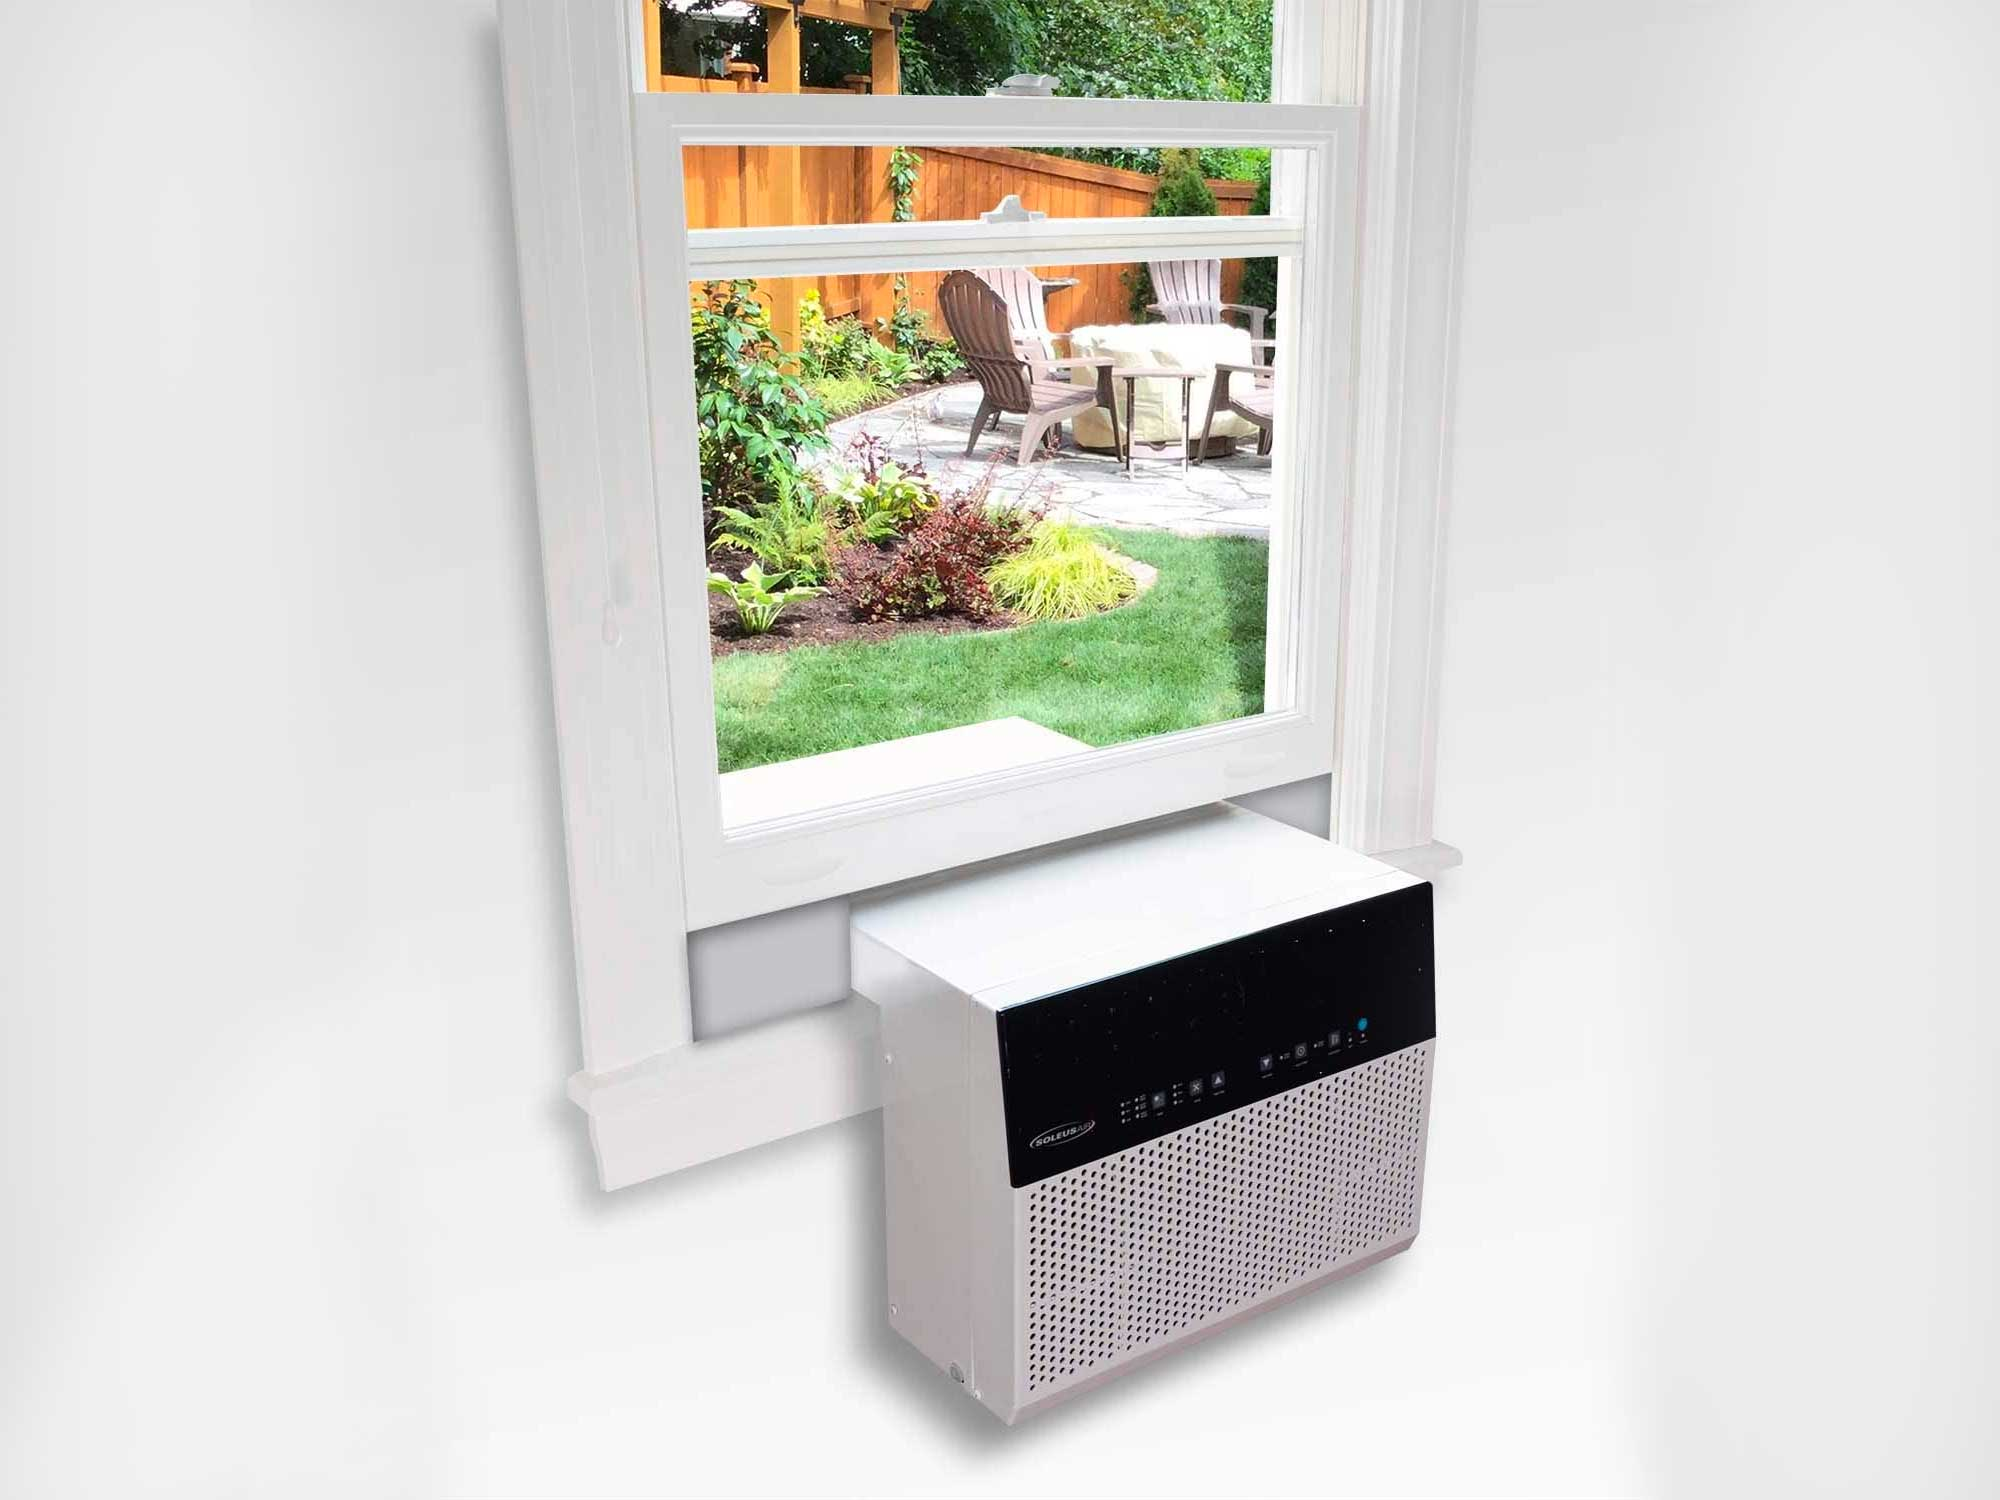 Window A/C unit